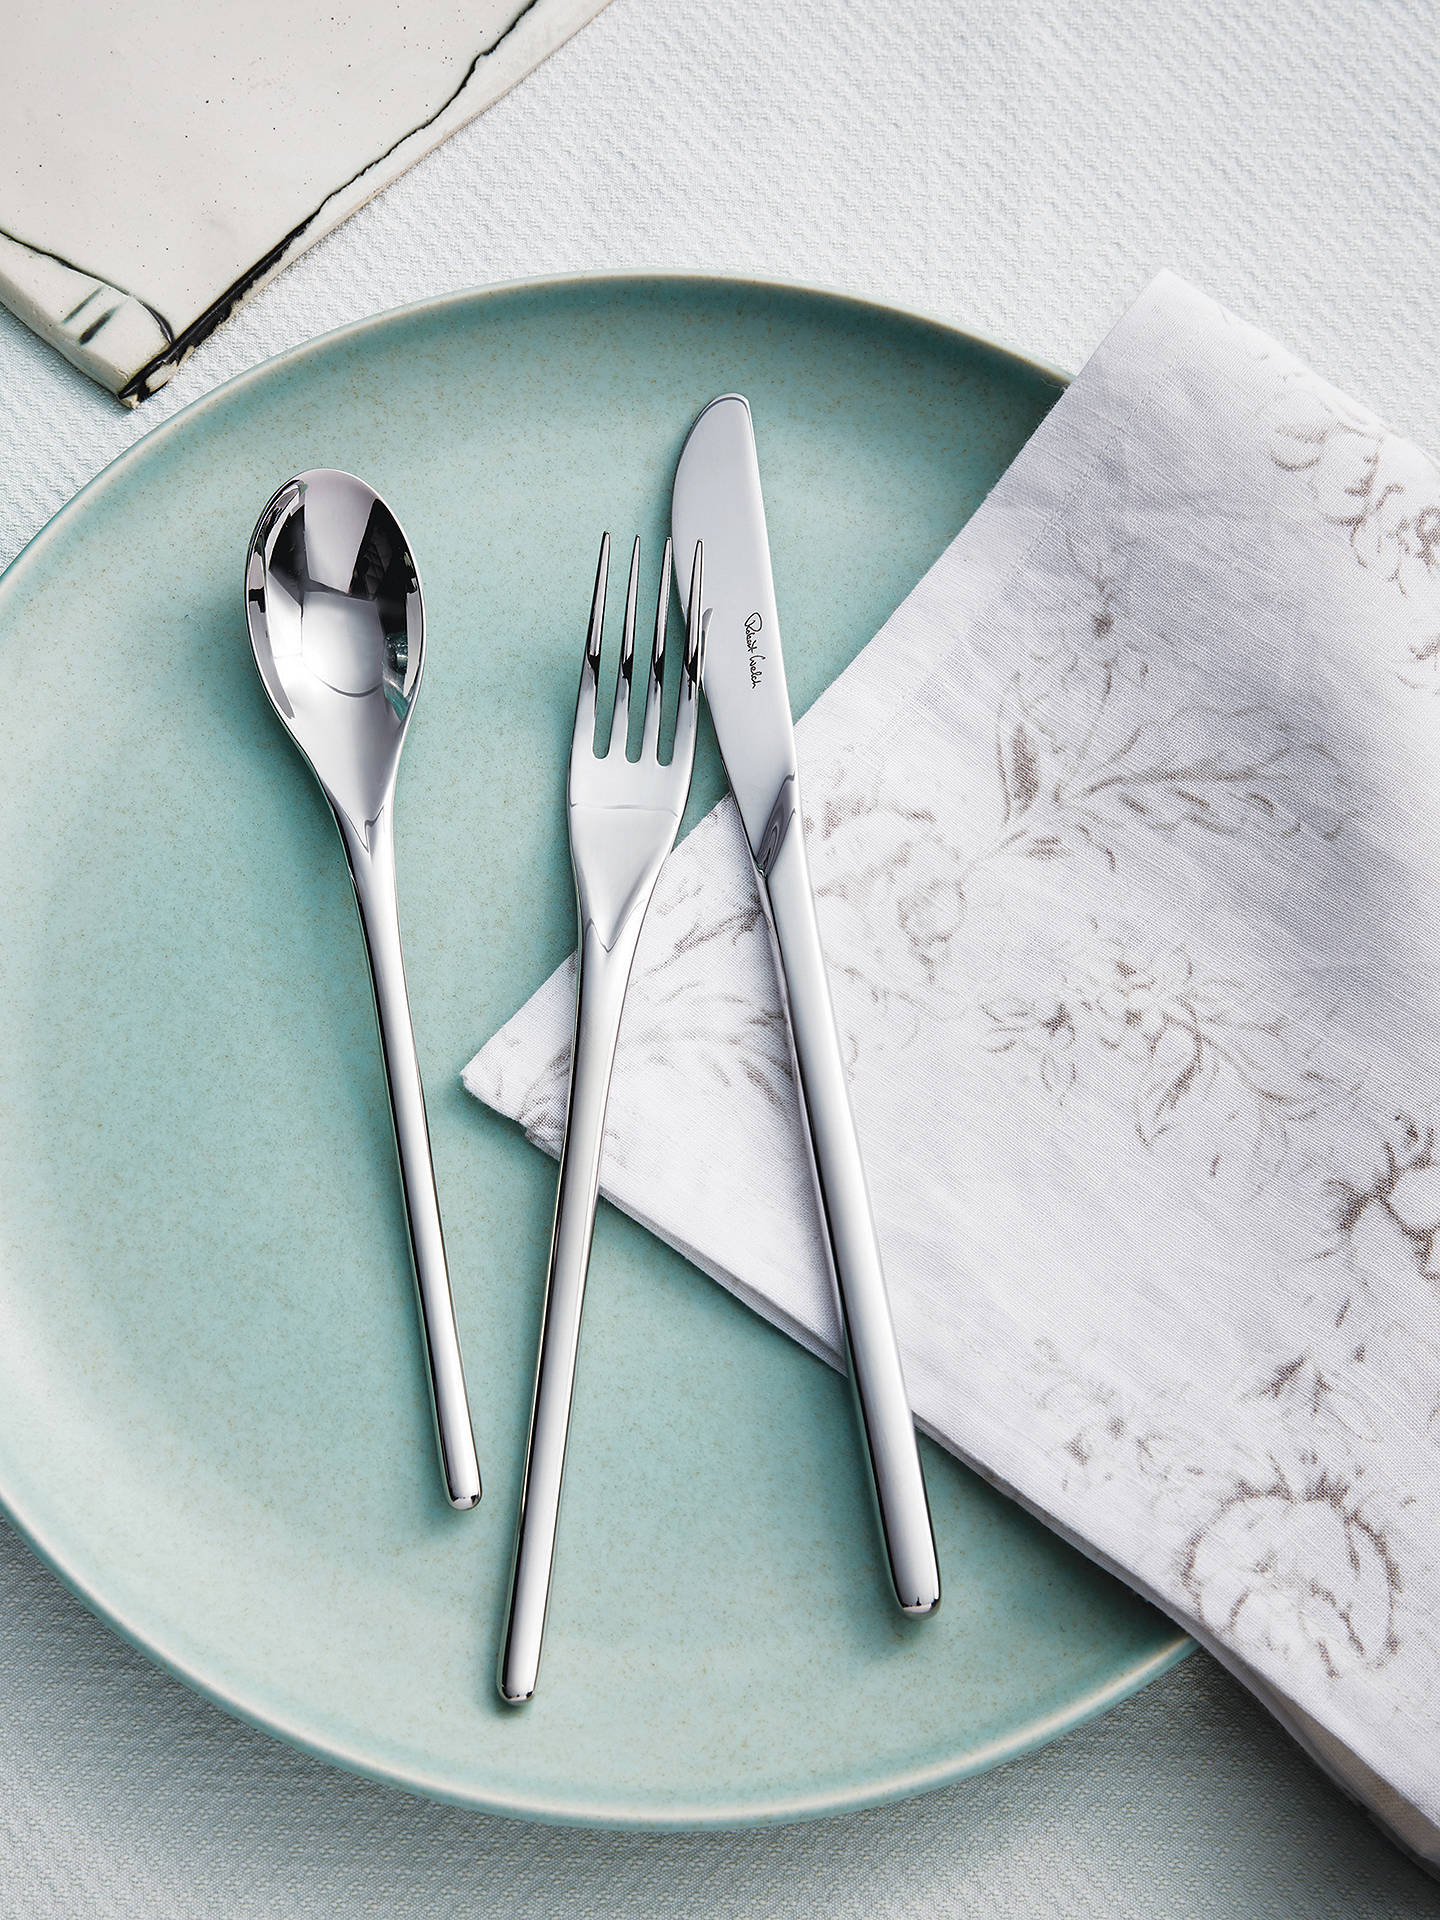 BuyRobert Welch Bud Cutlery Set, 42 Piece Online at johnlewis.com